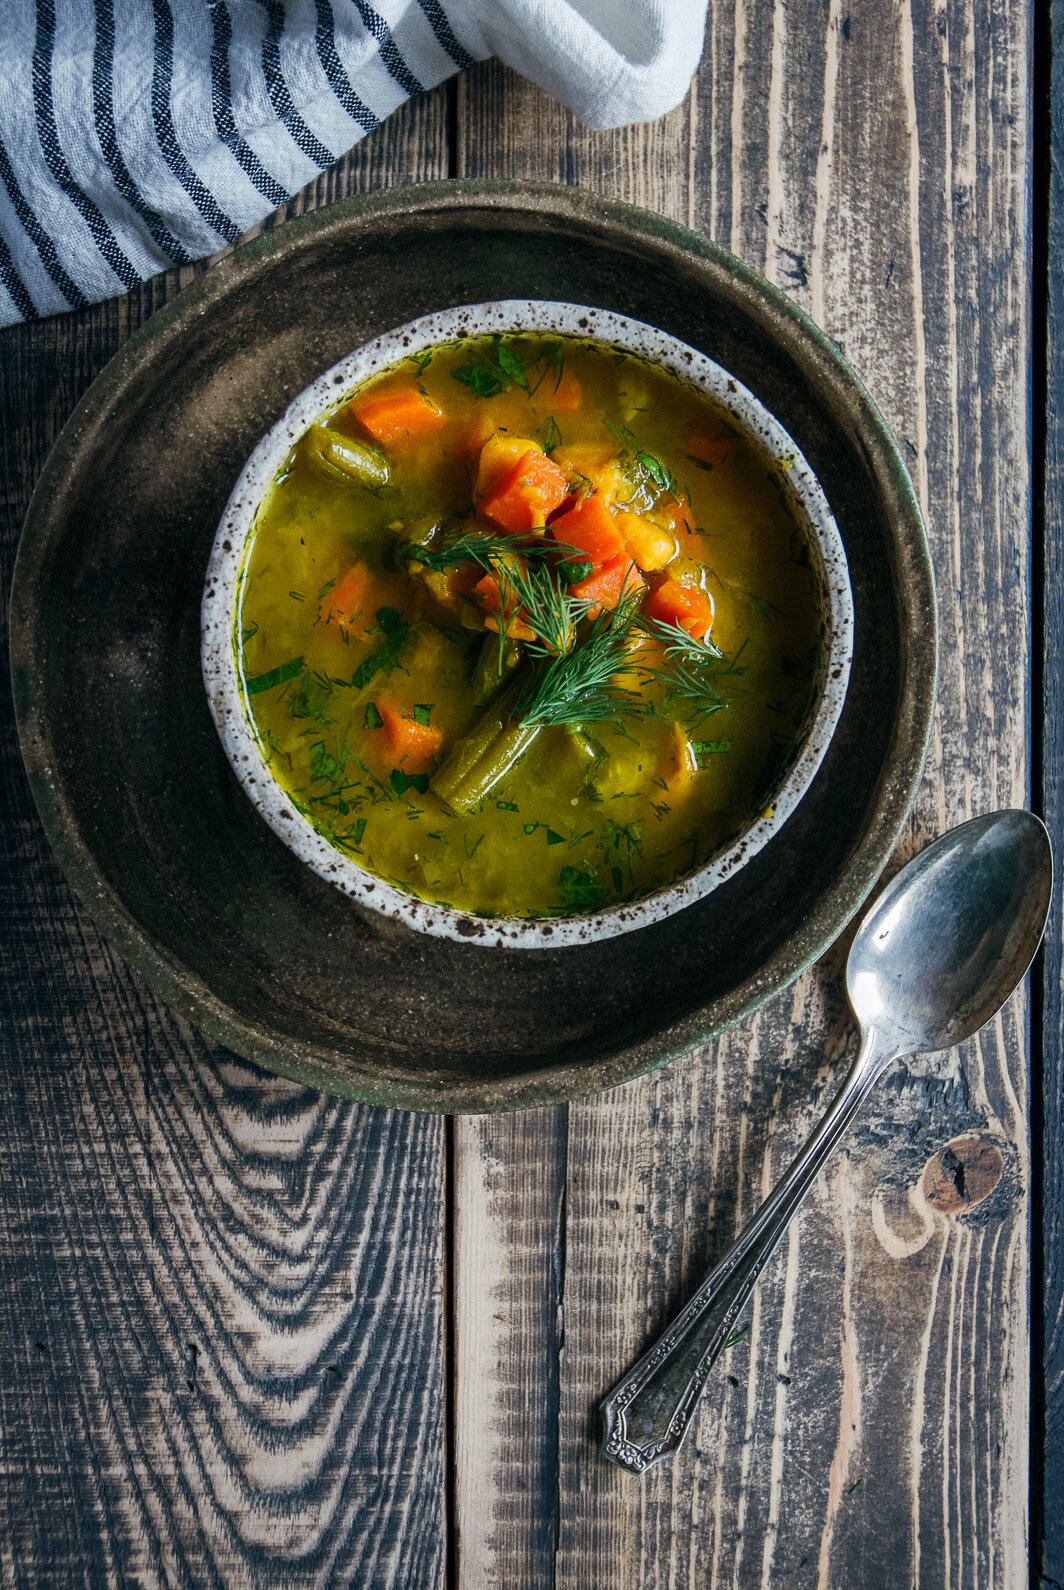 bone broth vegetable soup in bowl on plate with napkin and spoon